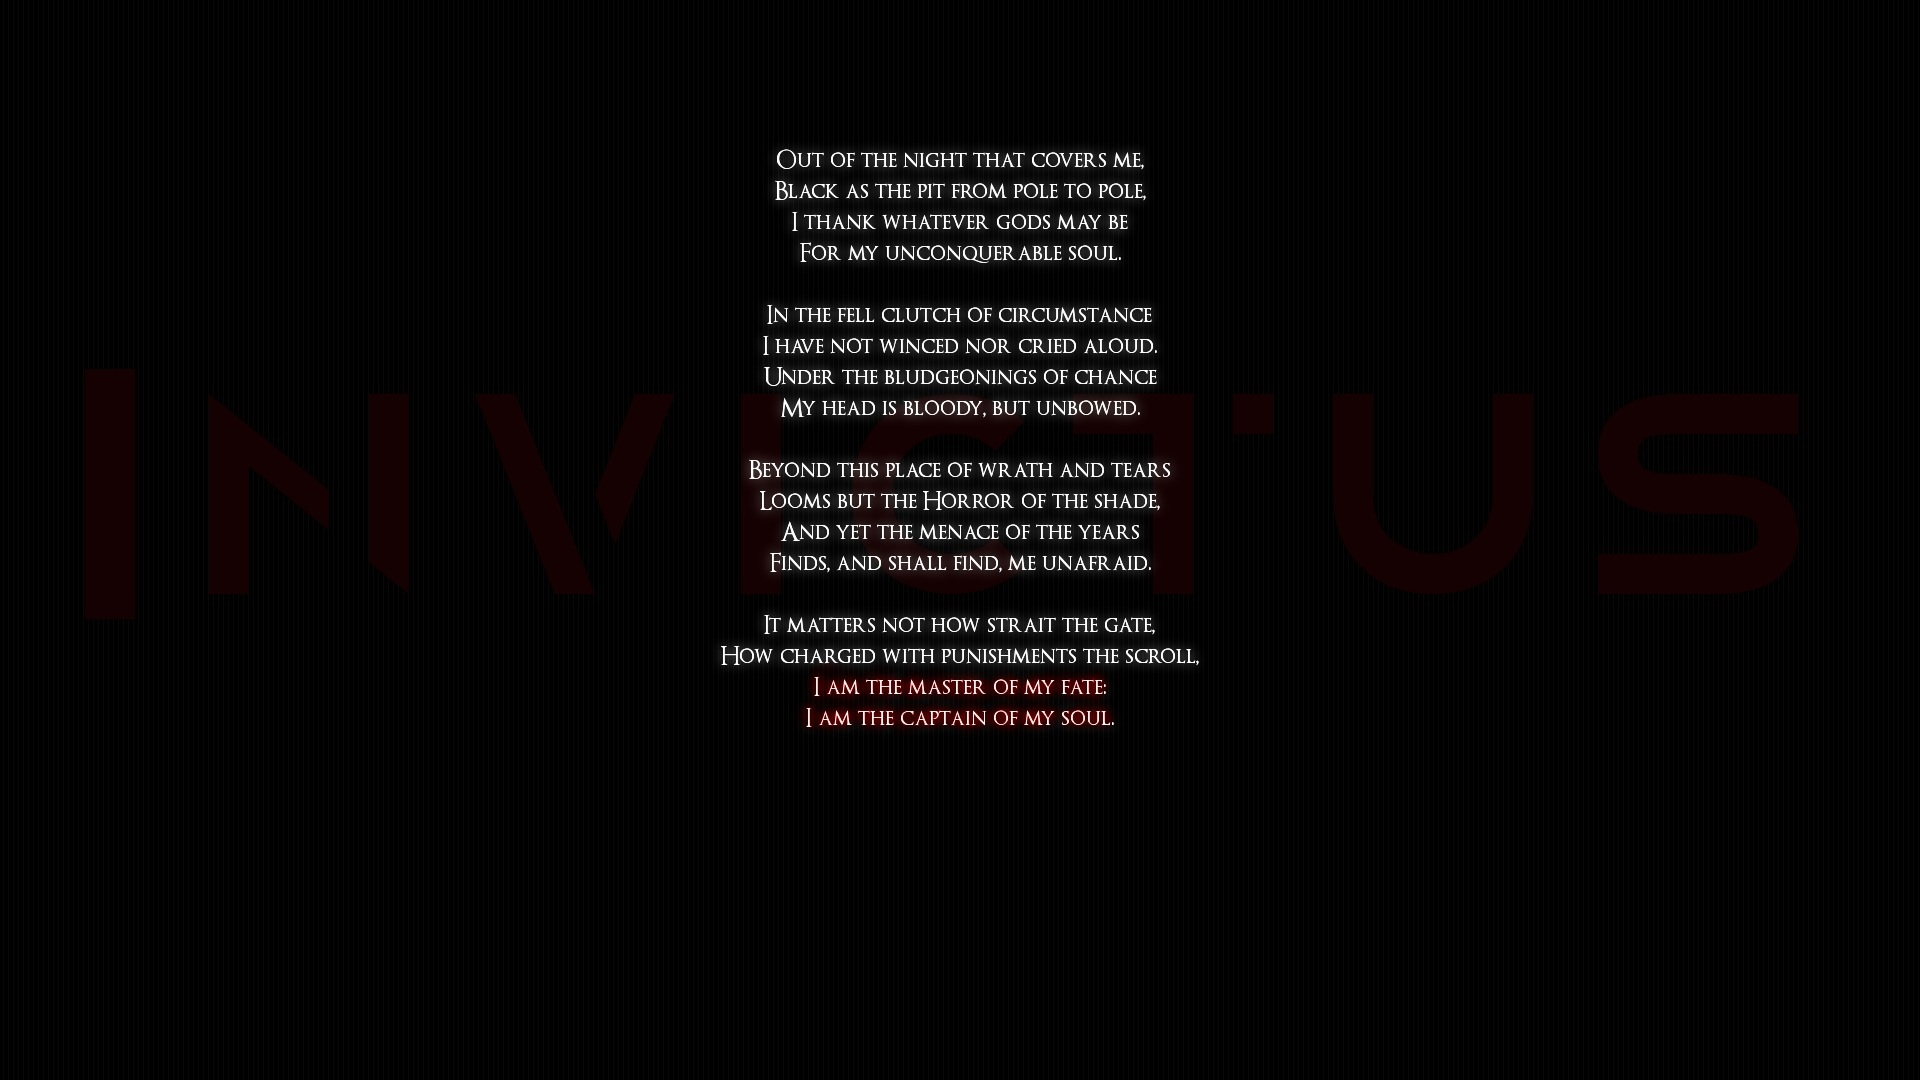 Invictus Black quotes poems statement text words wallpaper ...